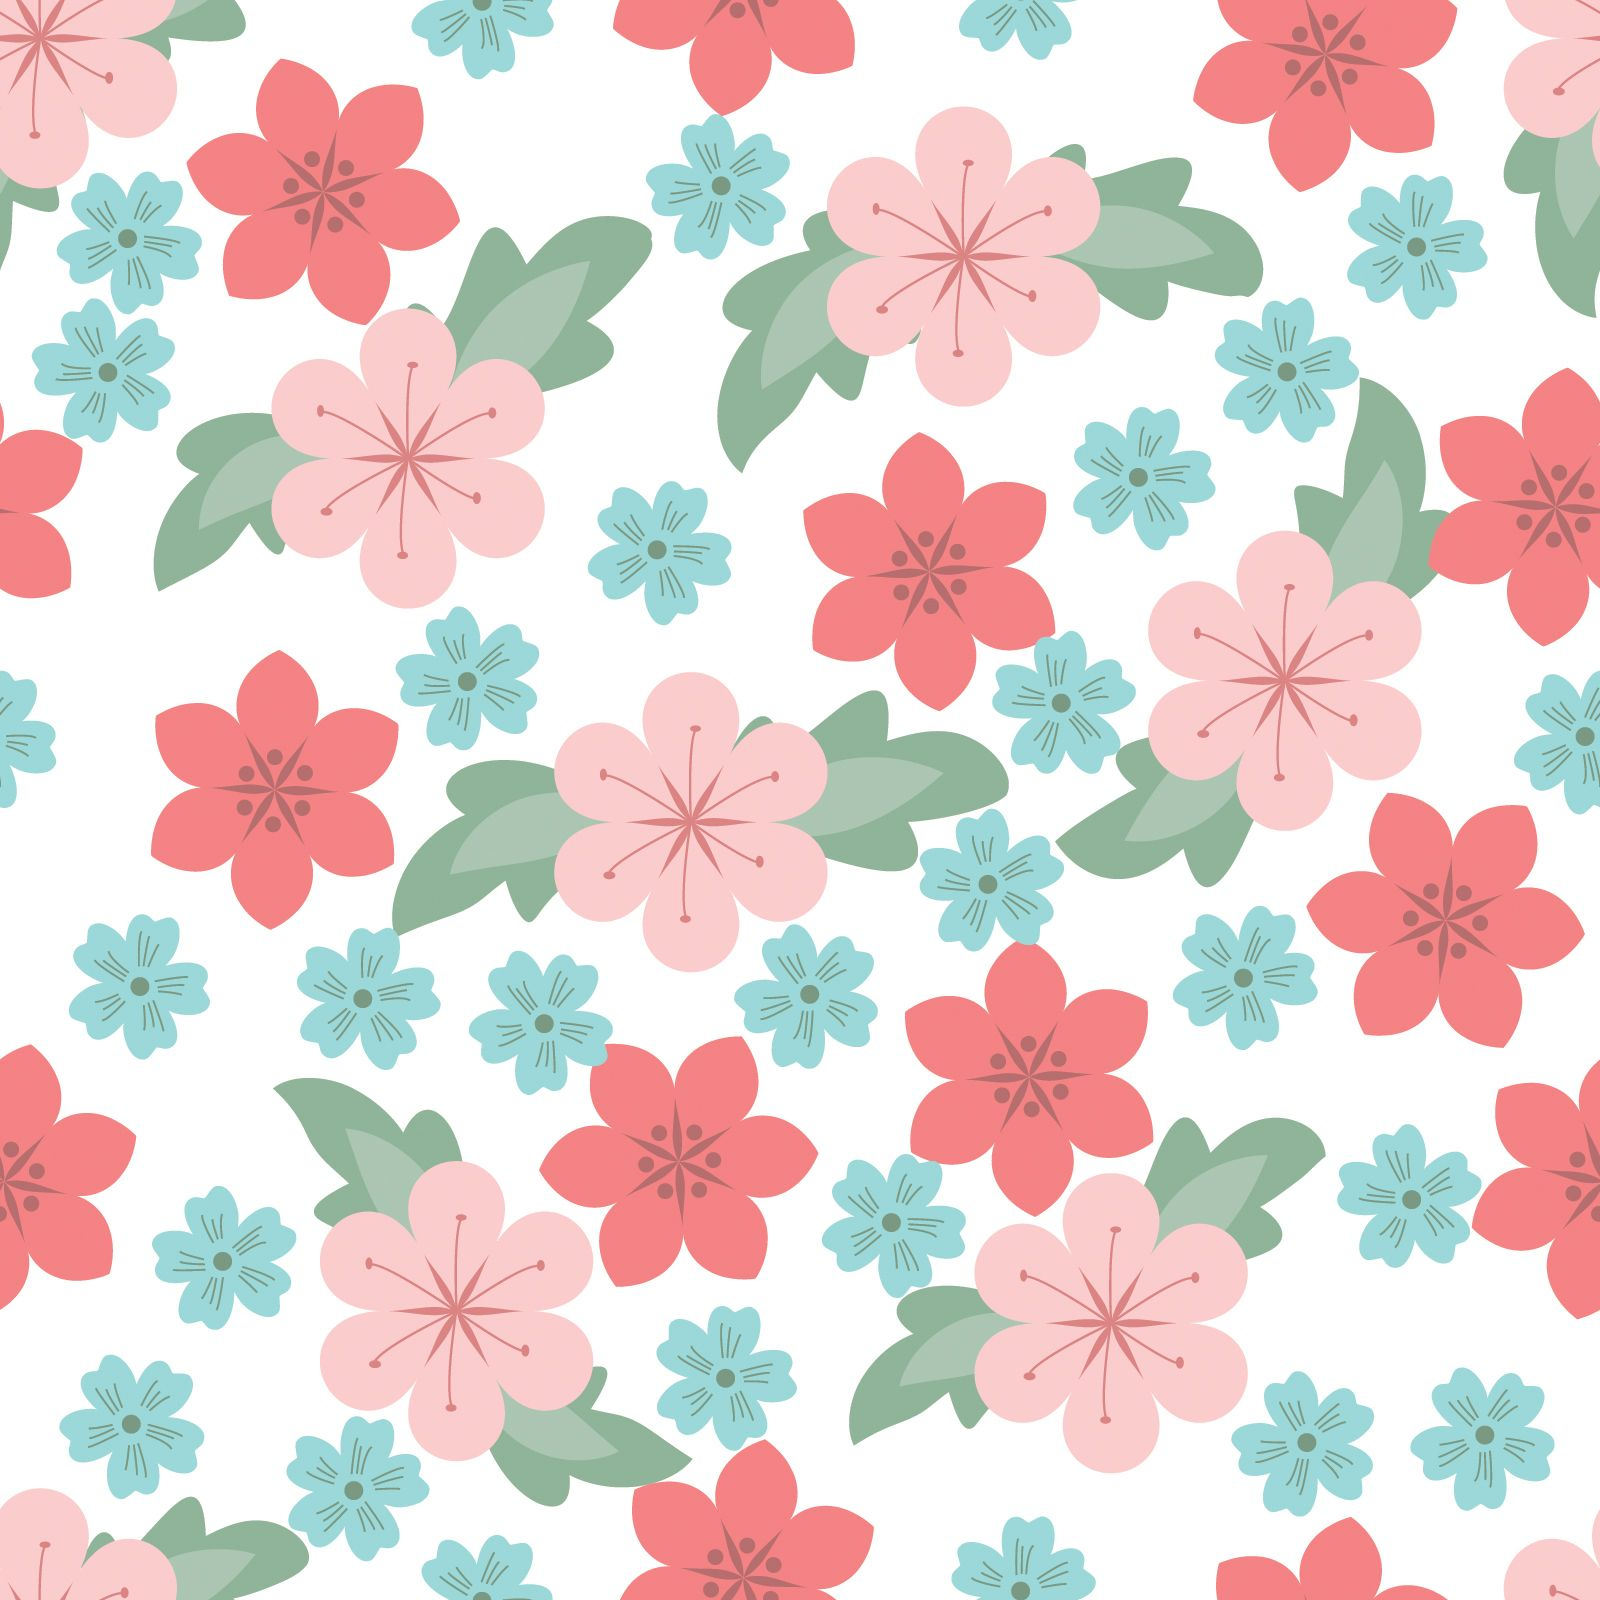 Pink flower wallpaper hd gallery clip art pinterest for Easy wallpaper ideas